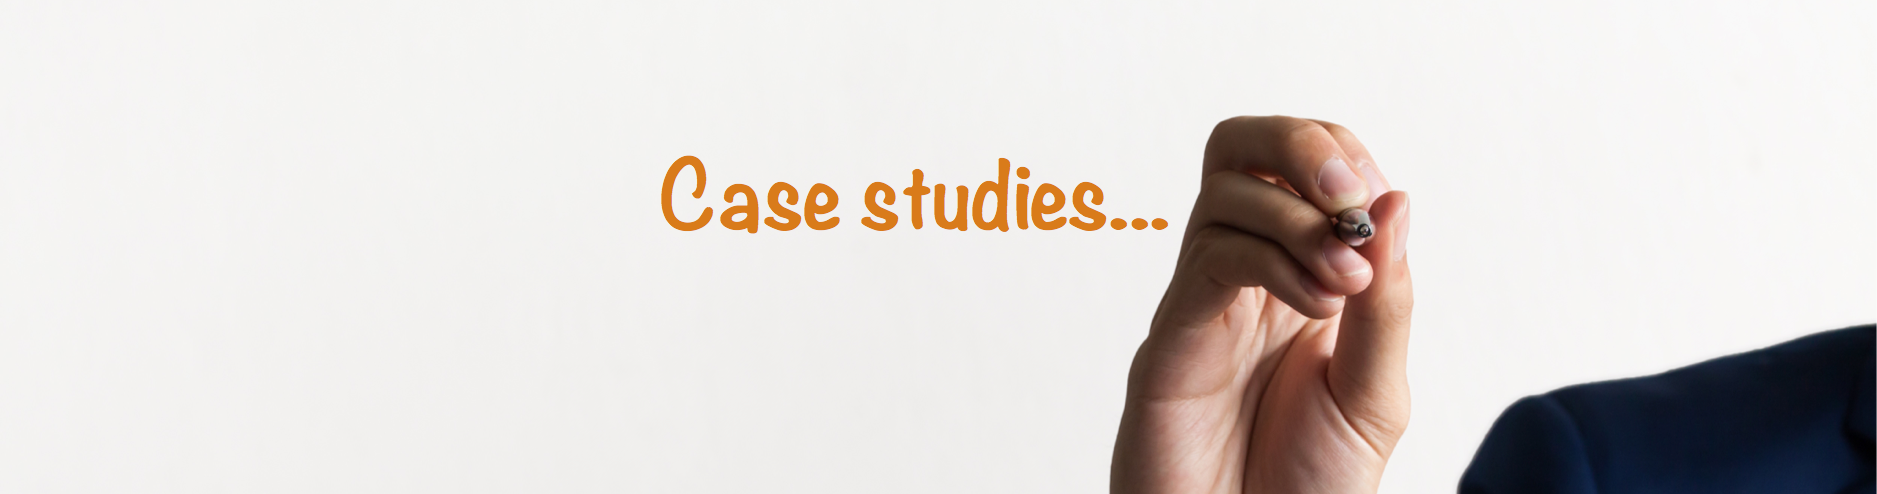 TBG-WEB-ABOUT-CASE-STUDIES-BANNER